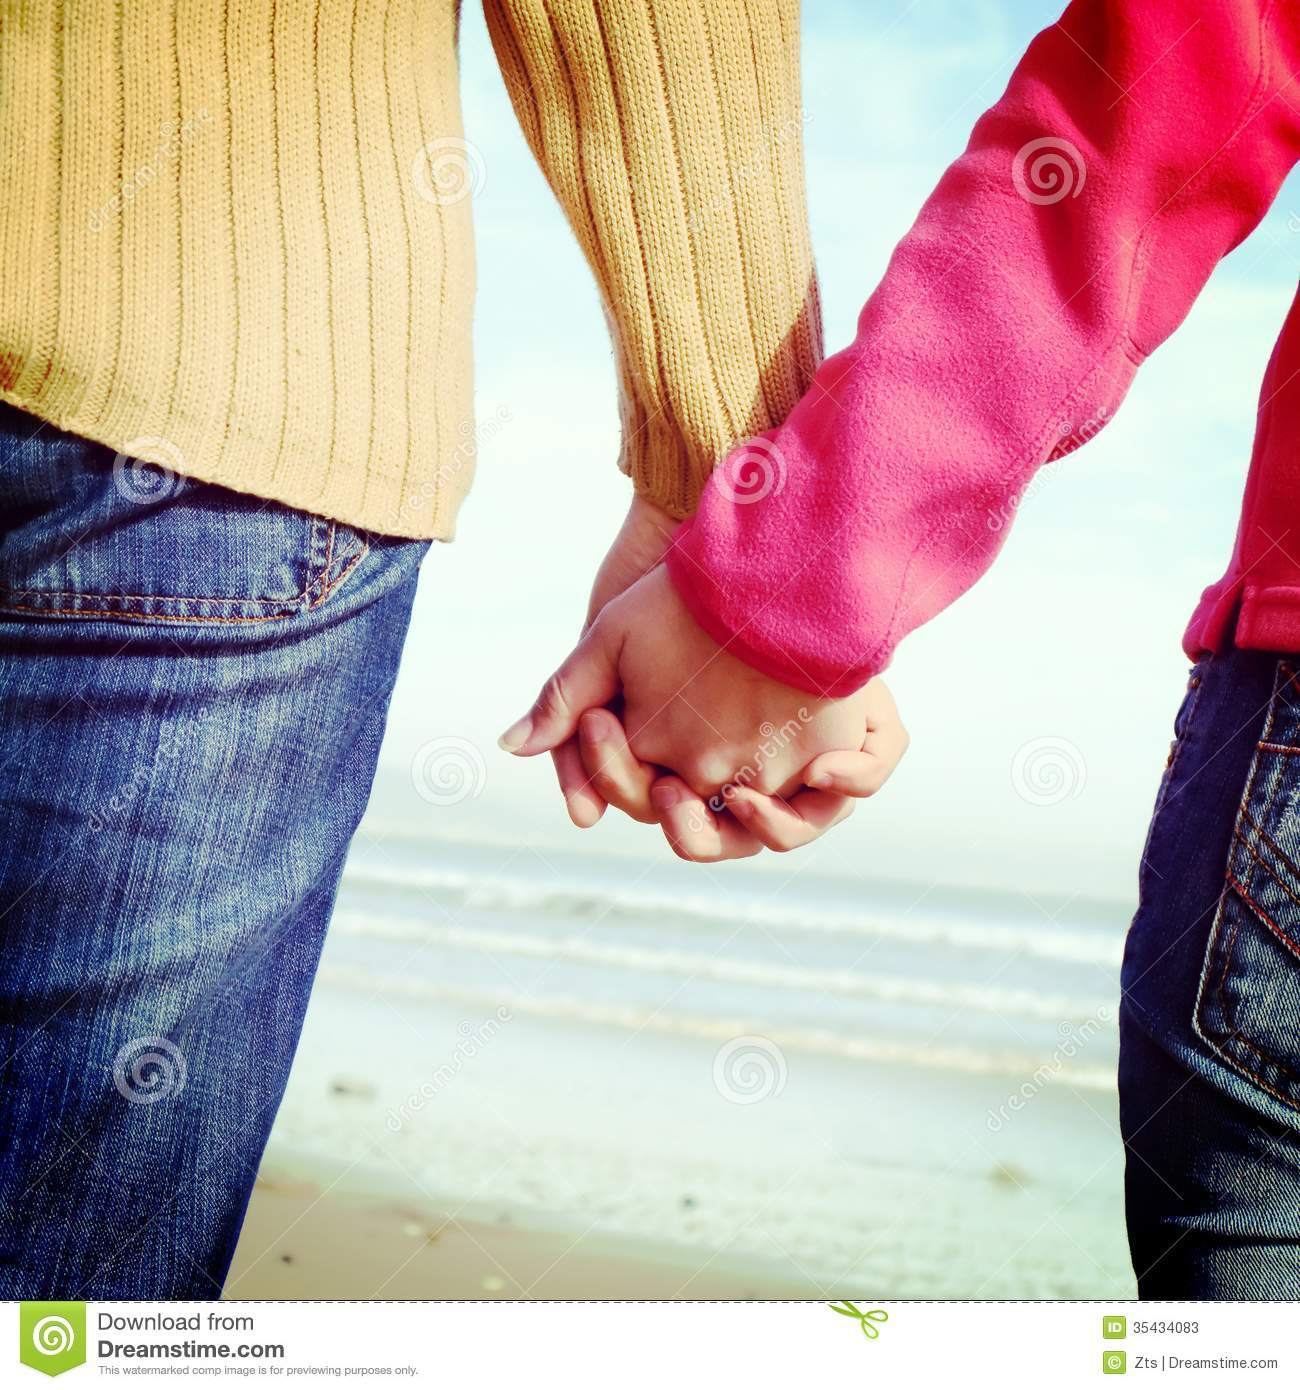 Couple Holding Hands In Beach Stock Photos - Image: 35434083